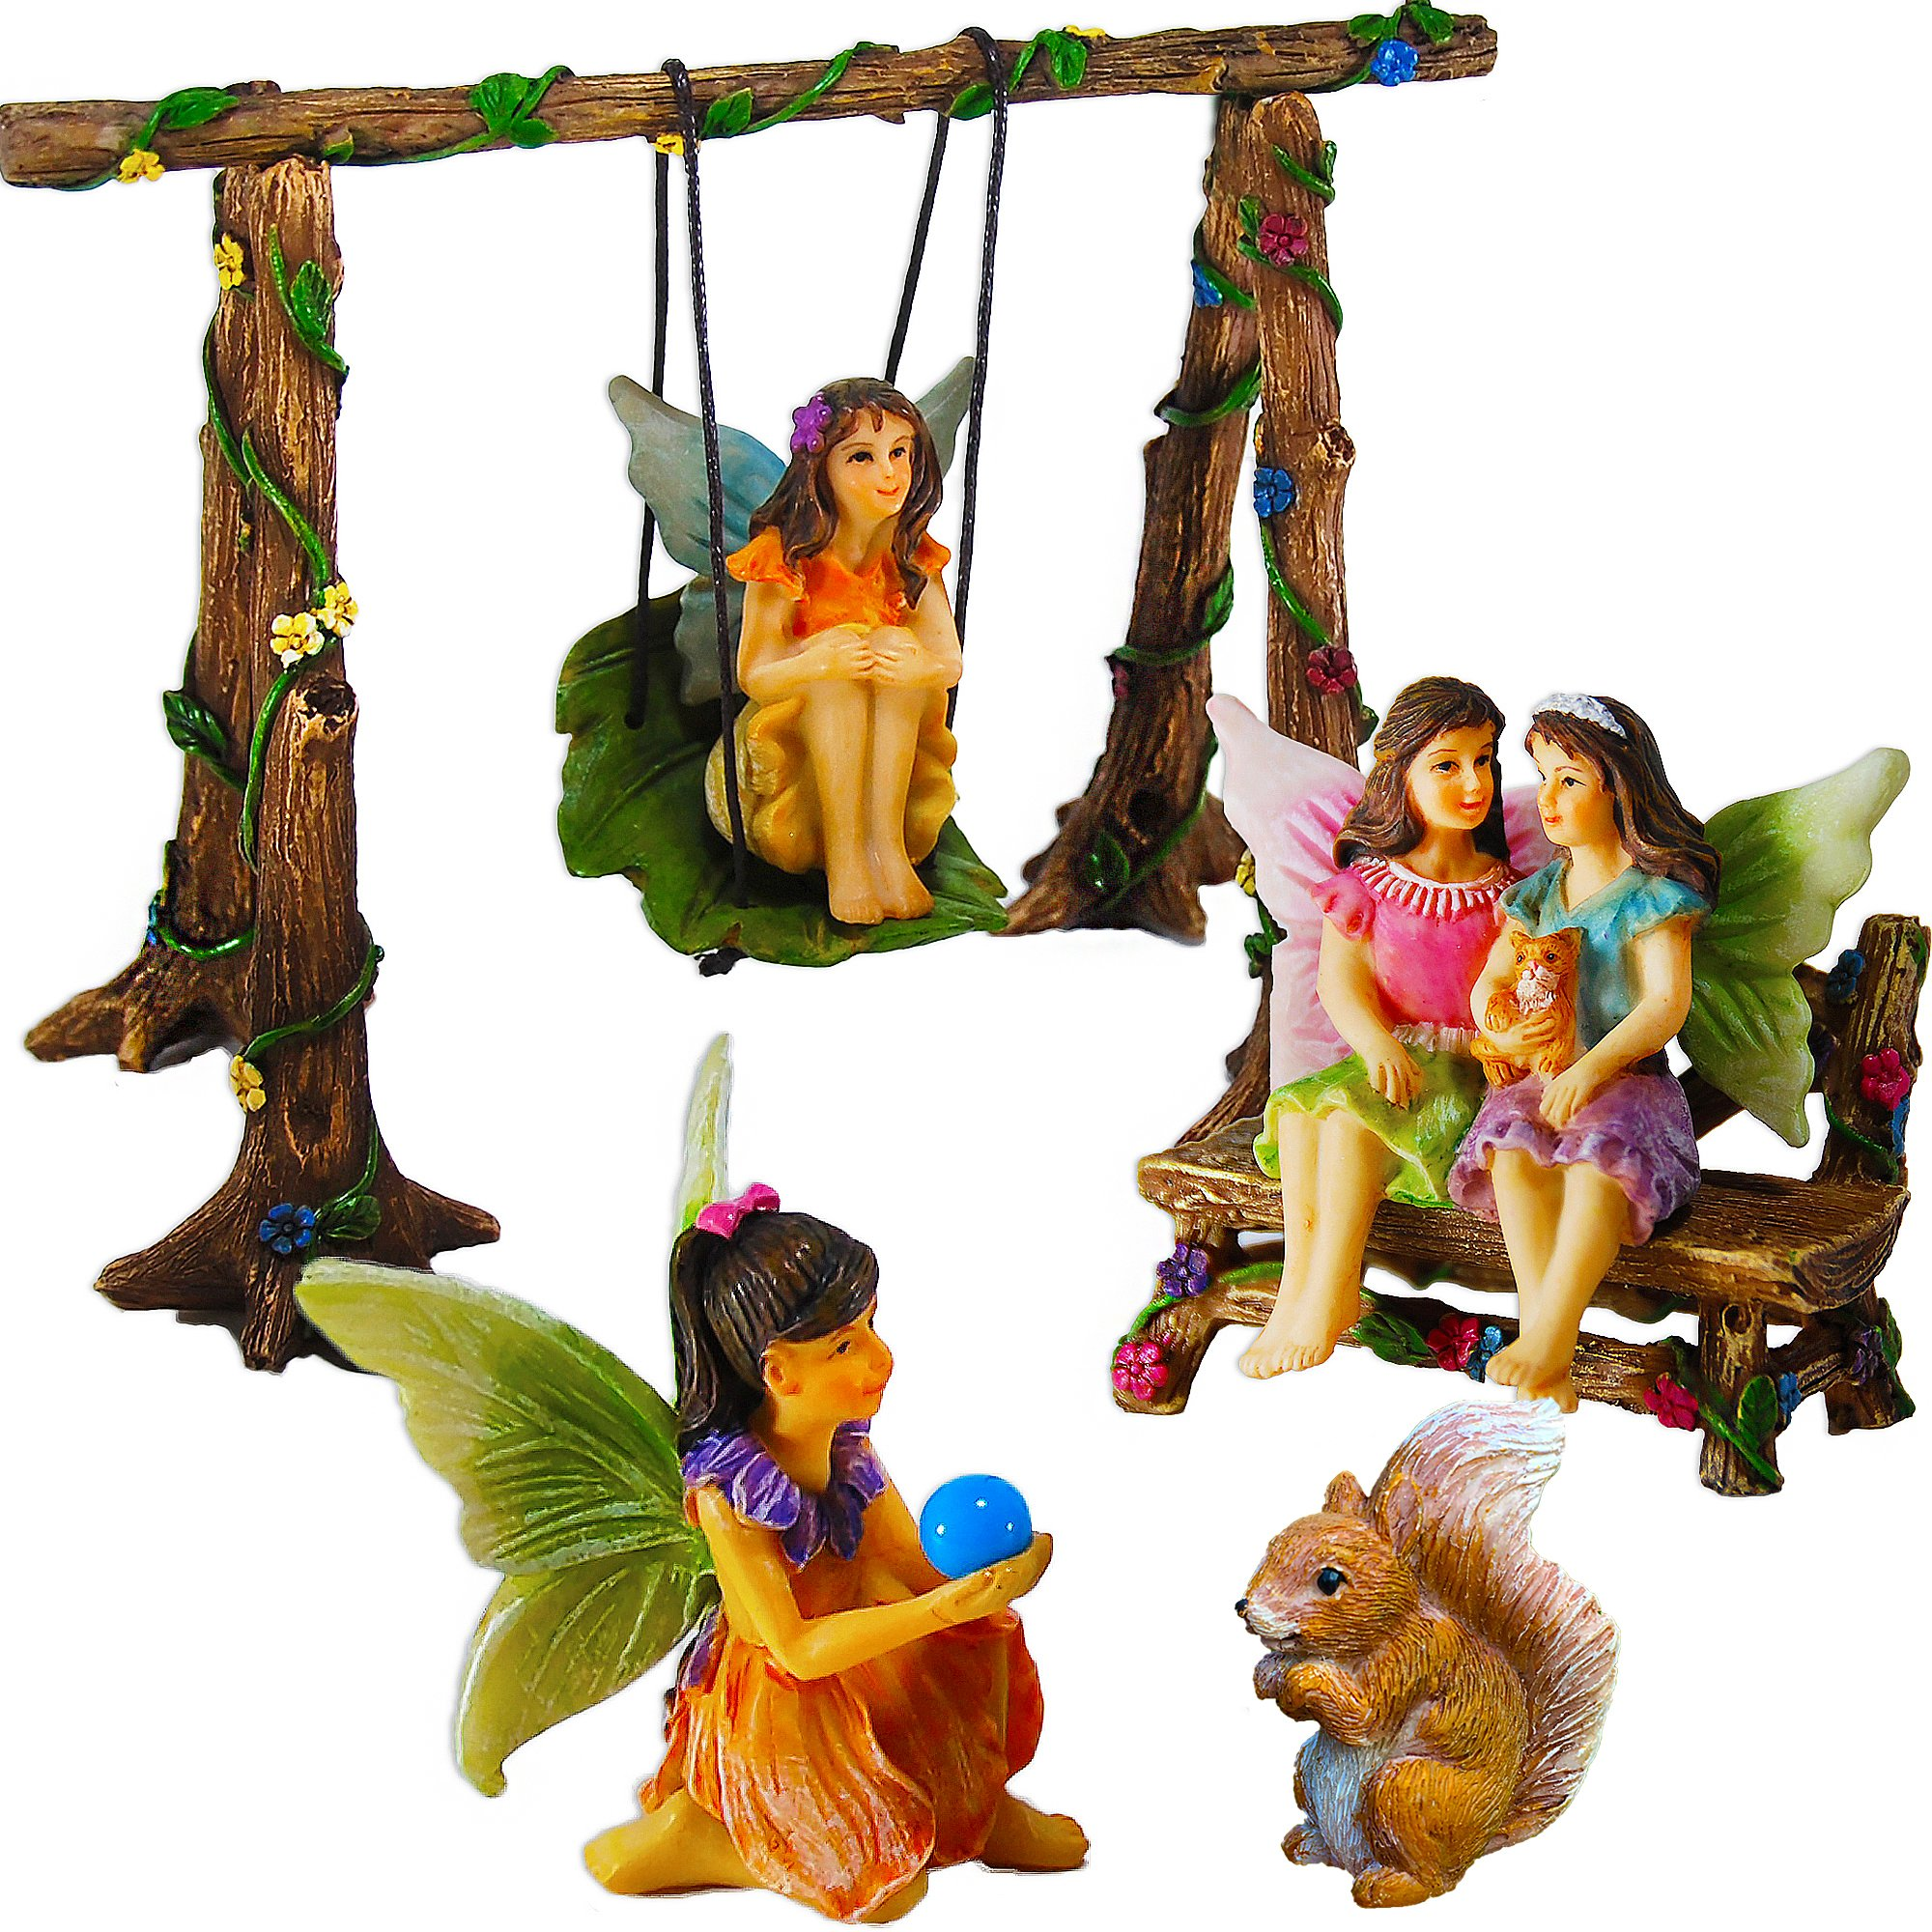 Mood Lab Fairy Garden - Accessories Kit Miniature Figurines - Hand Painted Swing Set of 6 pcs Outdoor House Decor by Mood Lab